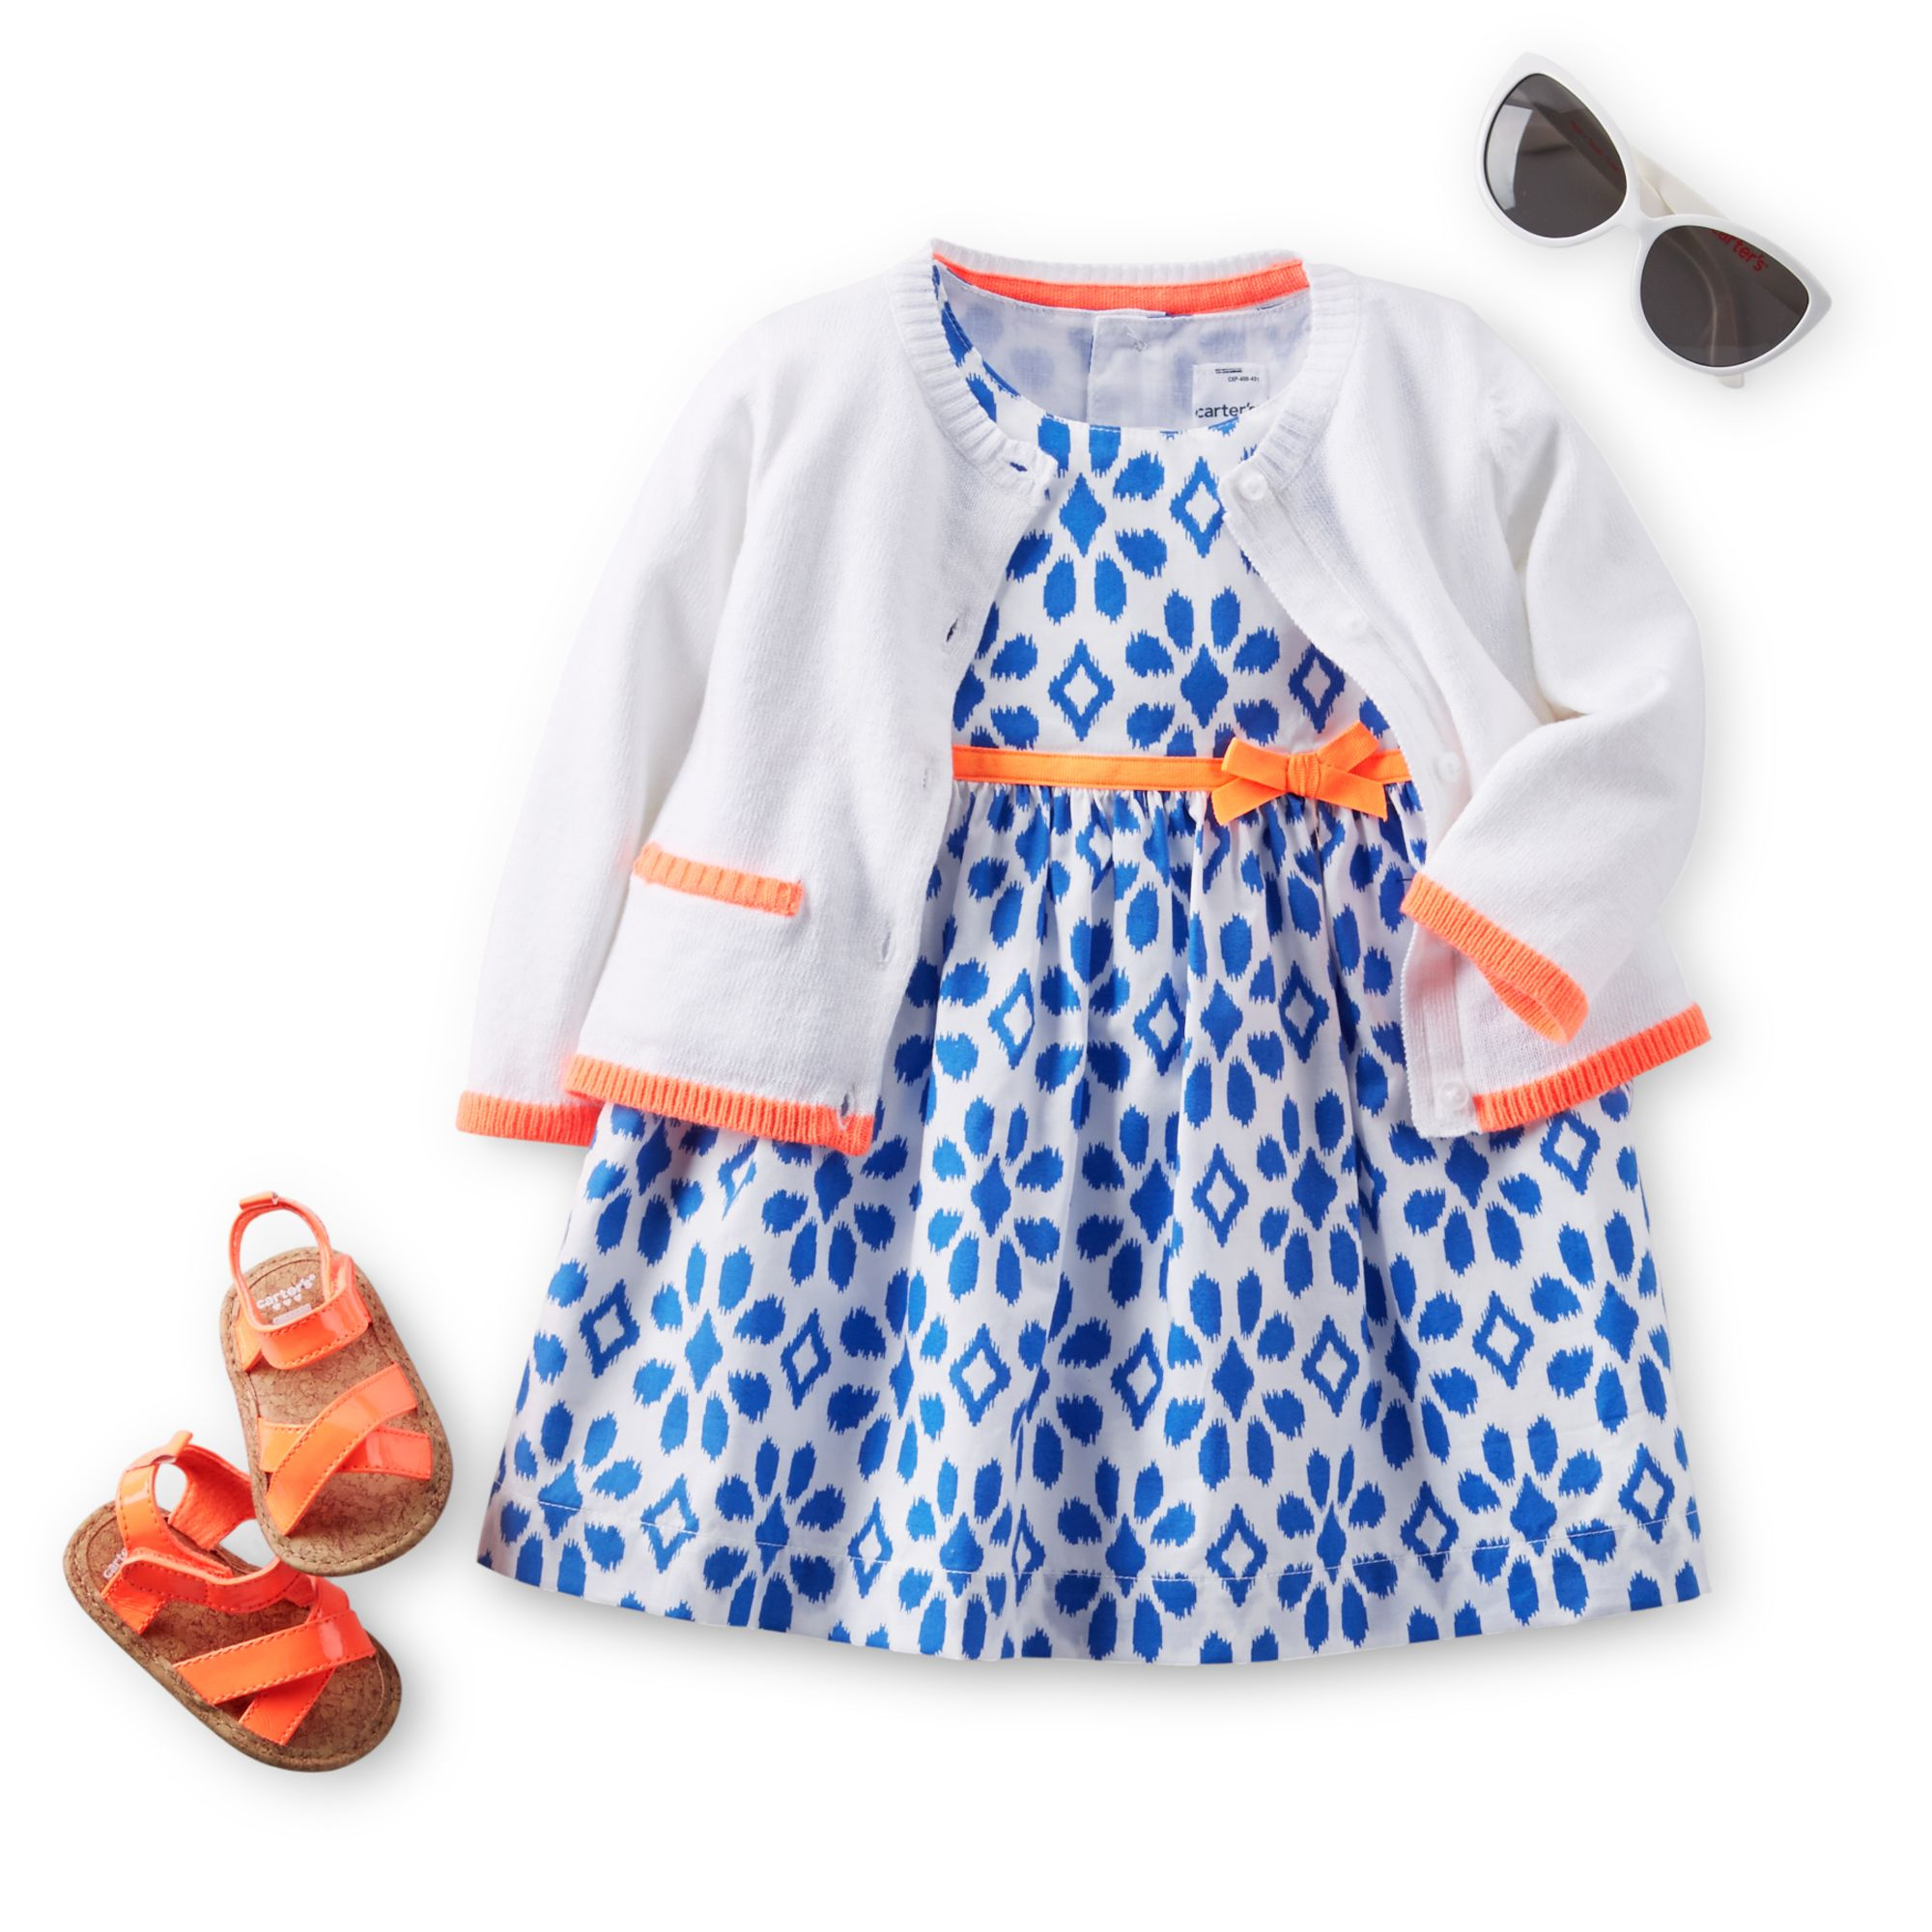 Sunglasses kid neon summer dress